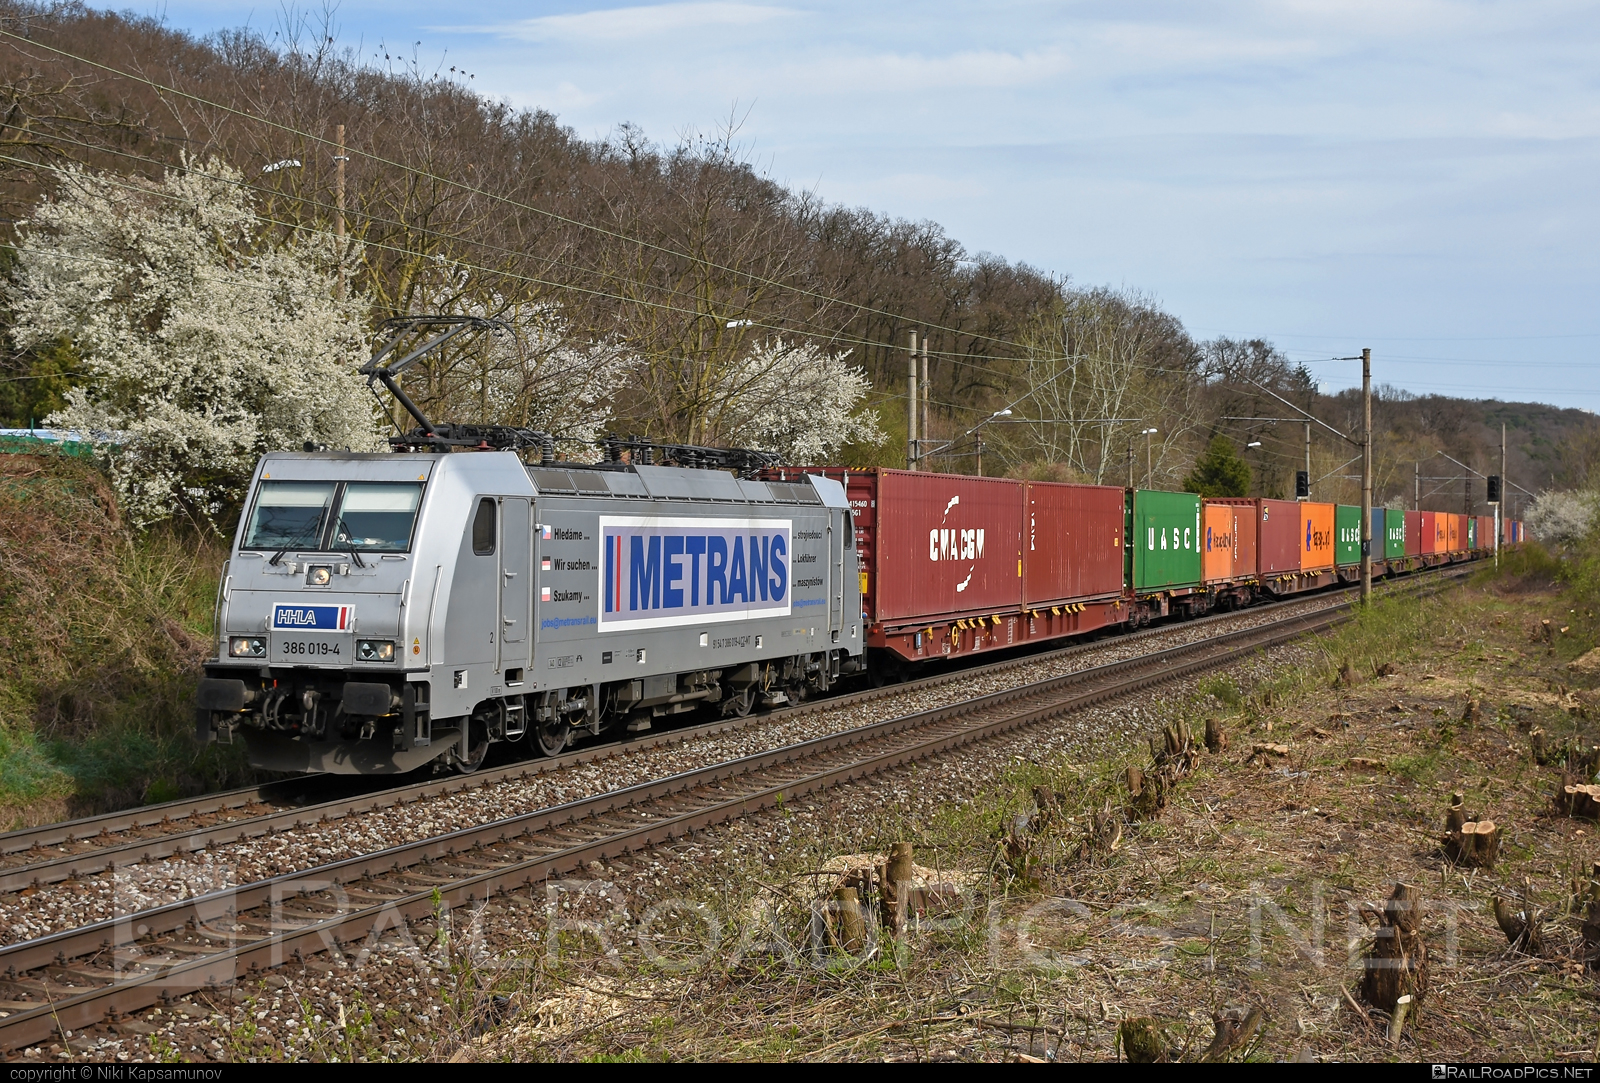 Bombardier TRAXX F140 MS - 386 019-4 operated by METRANS Rail s.r.o. #bombardier #bombardiertraxx #flatwagon #hhla #metrans #metransrail #traxx #traxxf140 #traxxf140ms